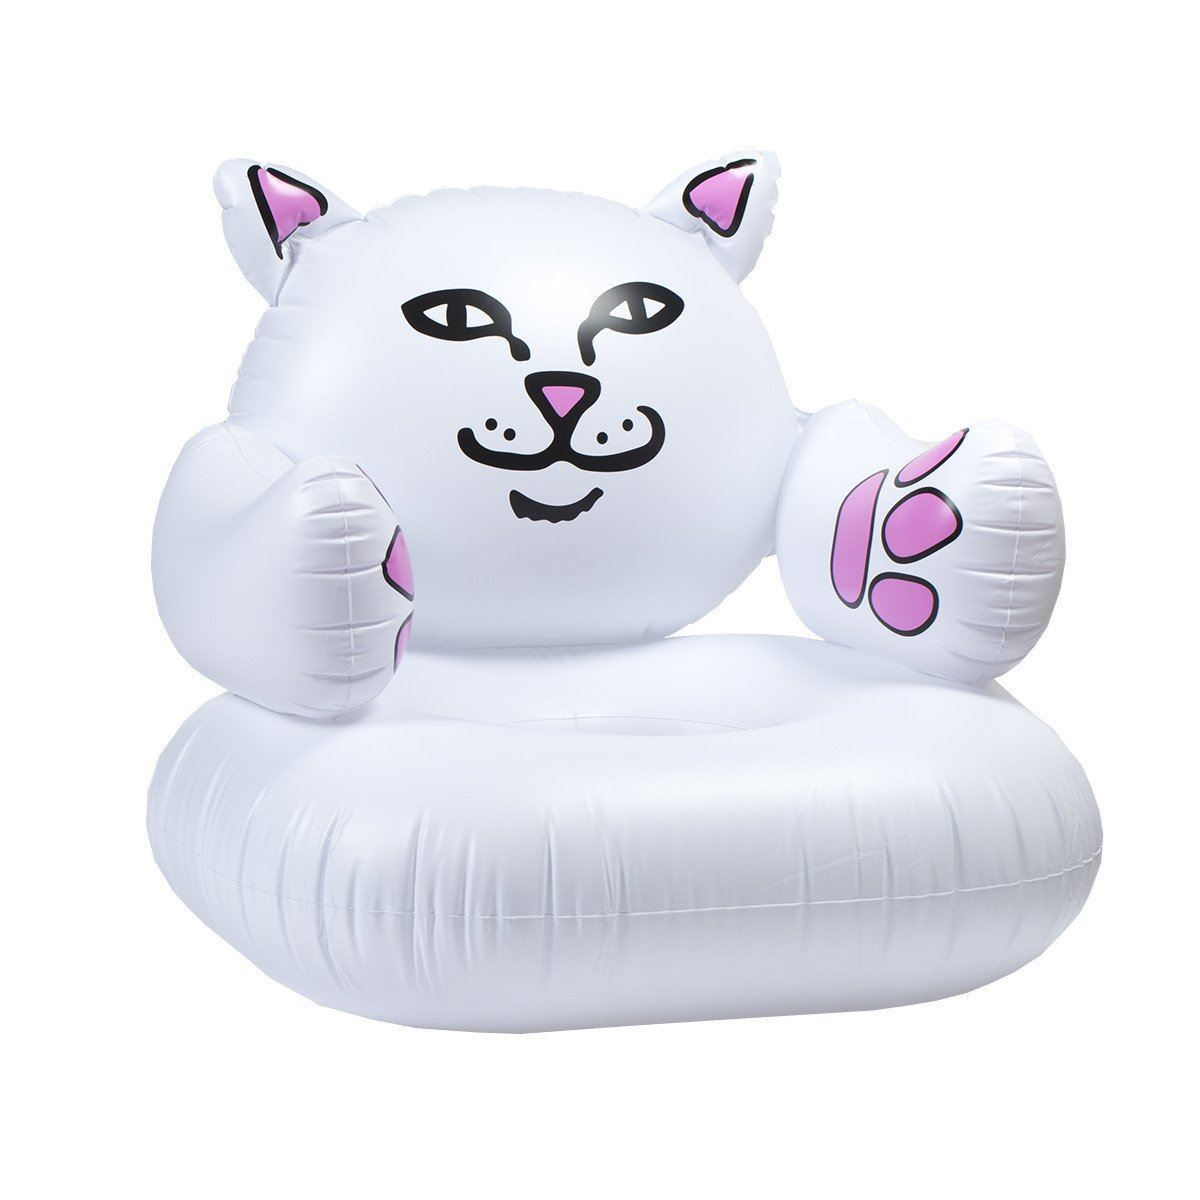 Inflatable Sofa Clear: Lord Nermal Inflatable Chair White